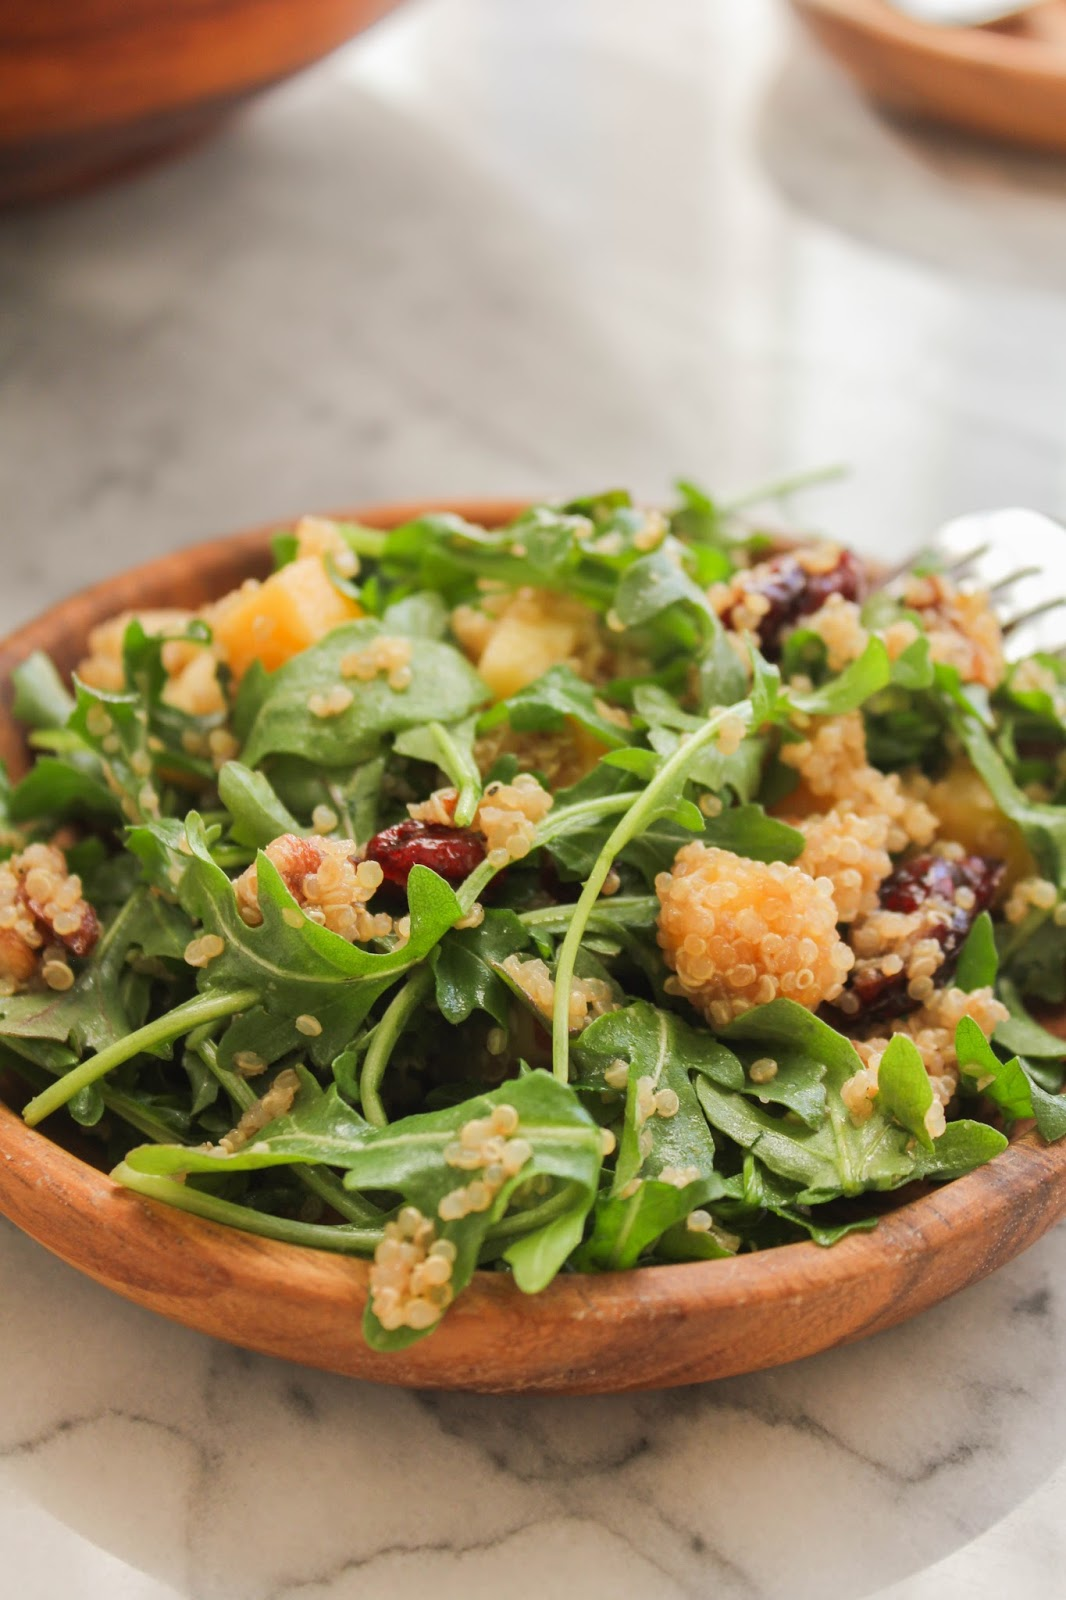 Quinoa Salad with Nuts, Fruit and Greens